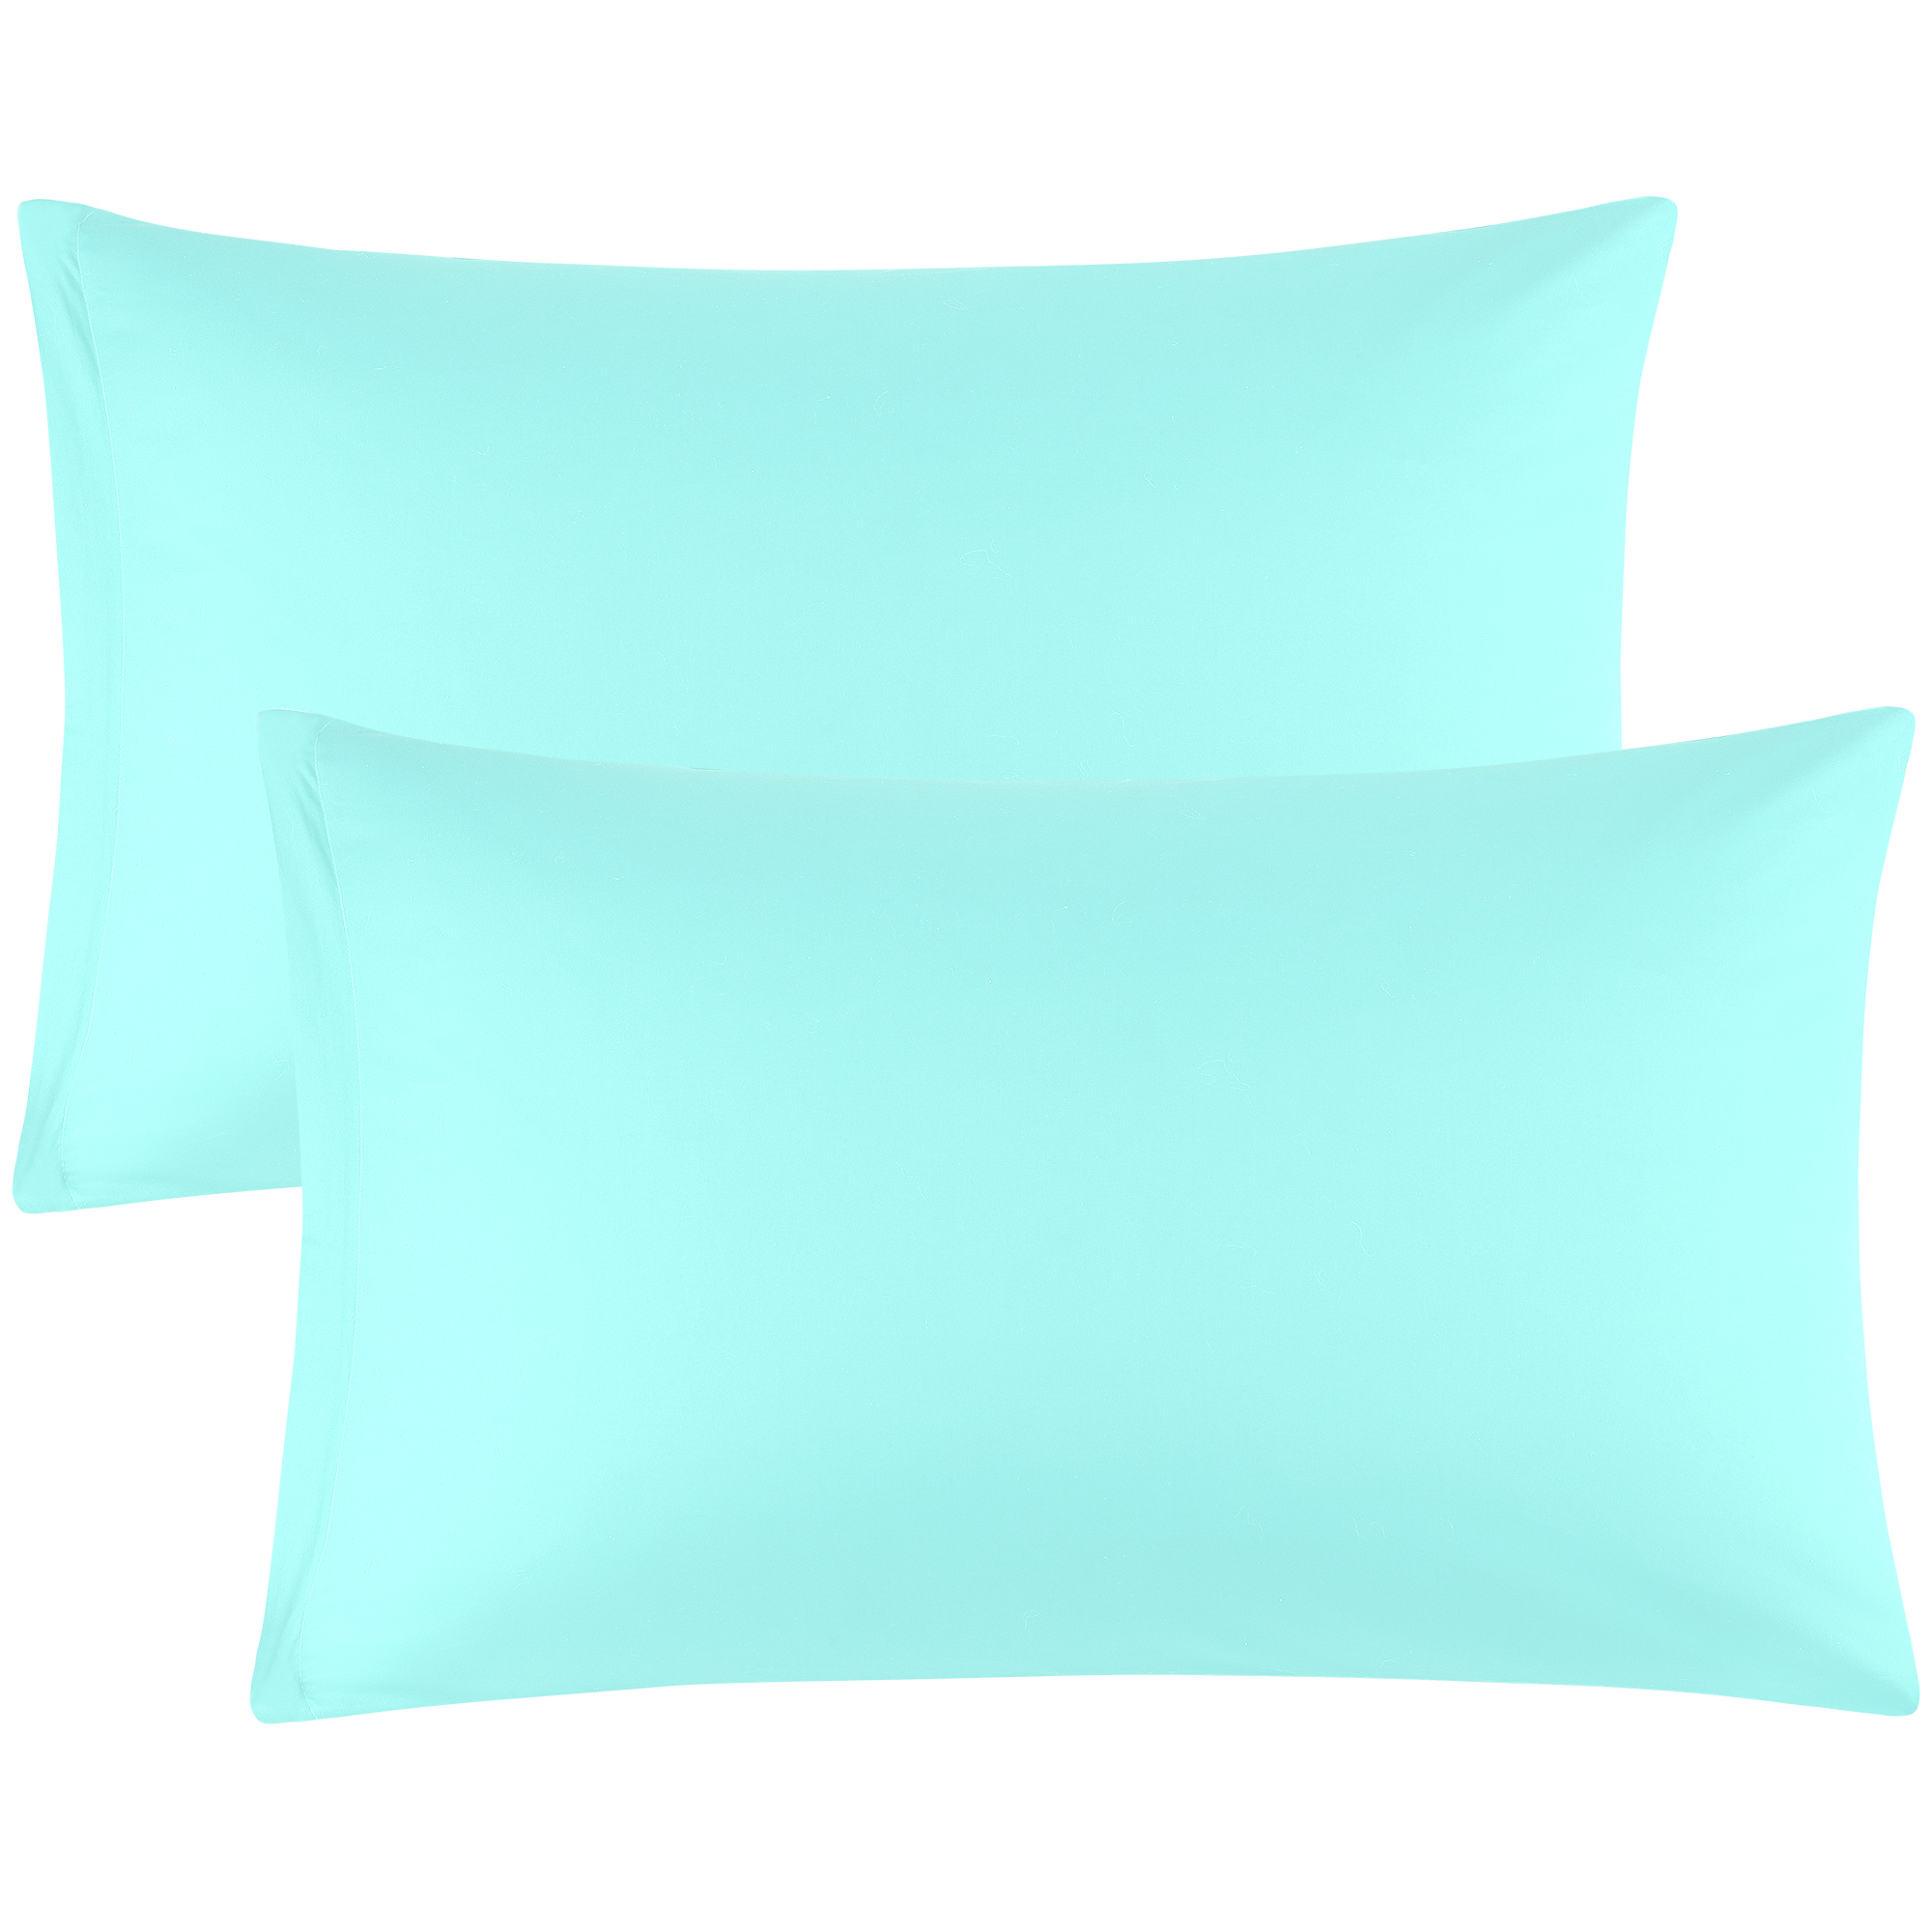 Zippered Pillow Cases Pillowcases Egyptian Cotton 2-Pack (20 x 26 Inch, Cyan)